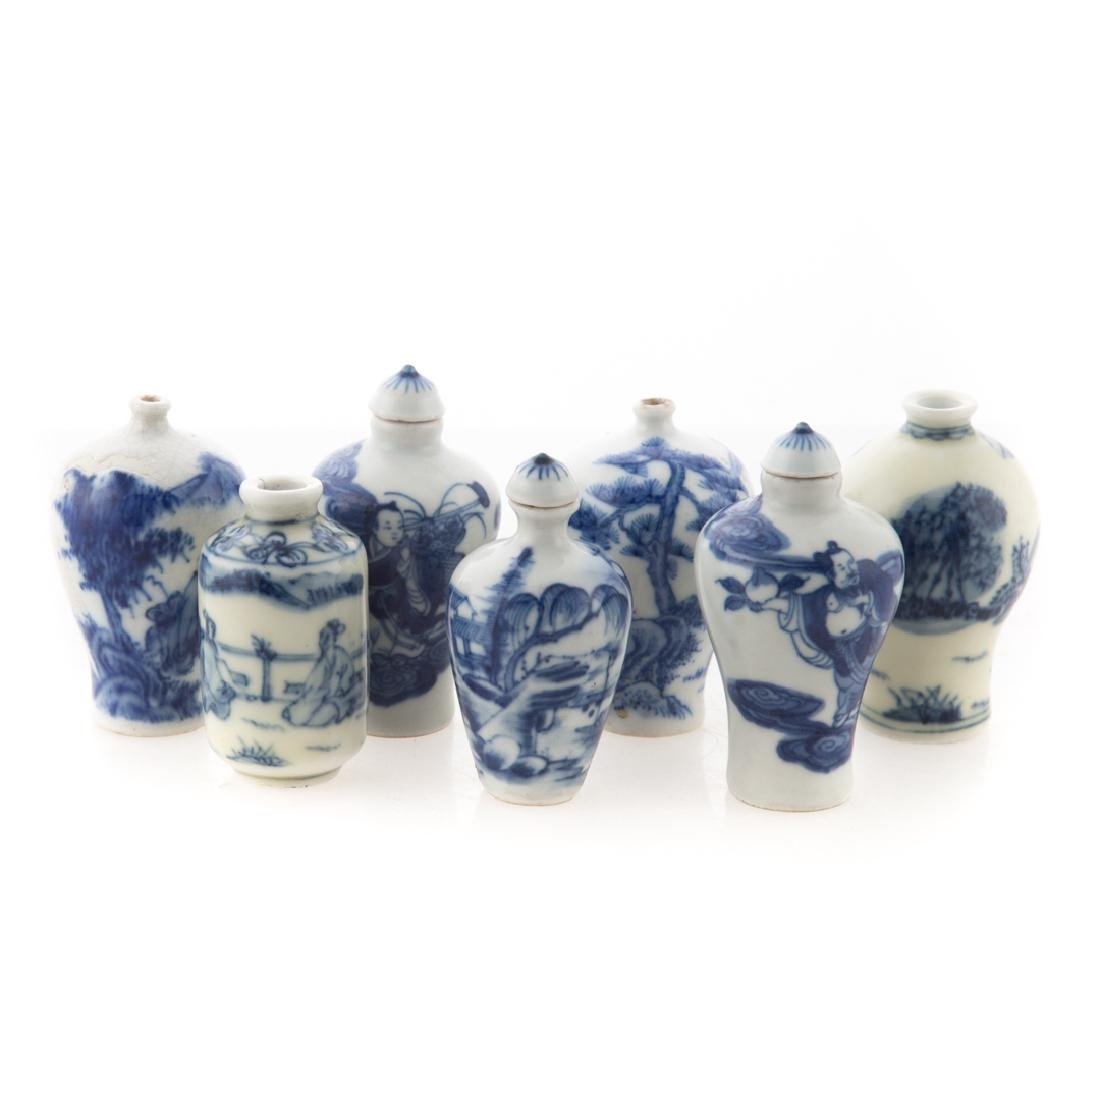 Seven Chinese porcelain snuff bottles